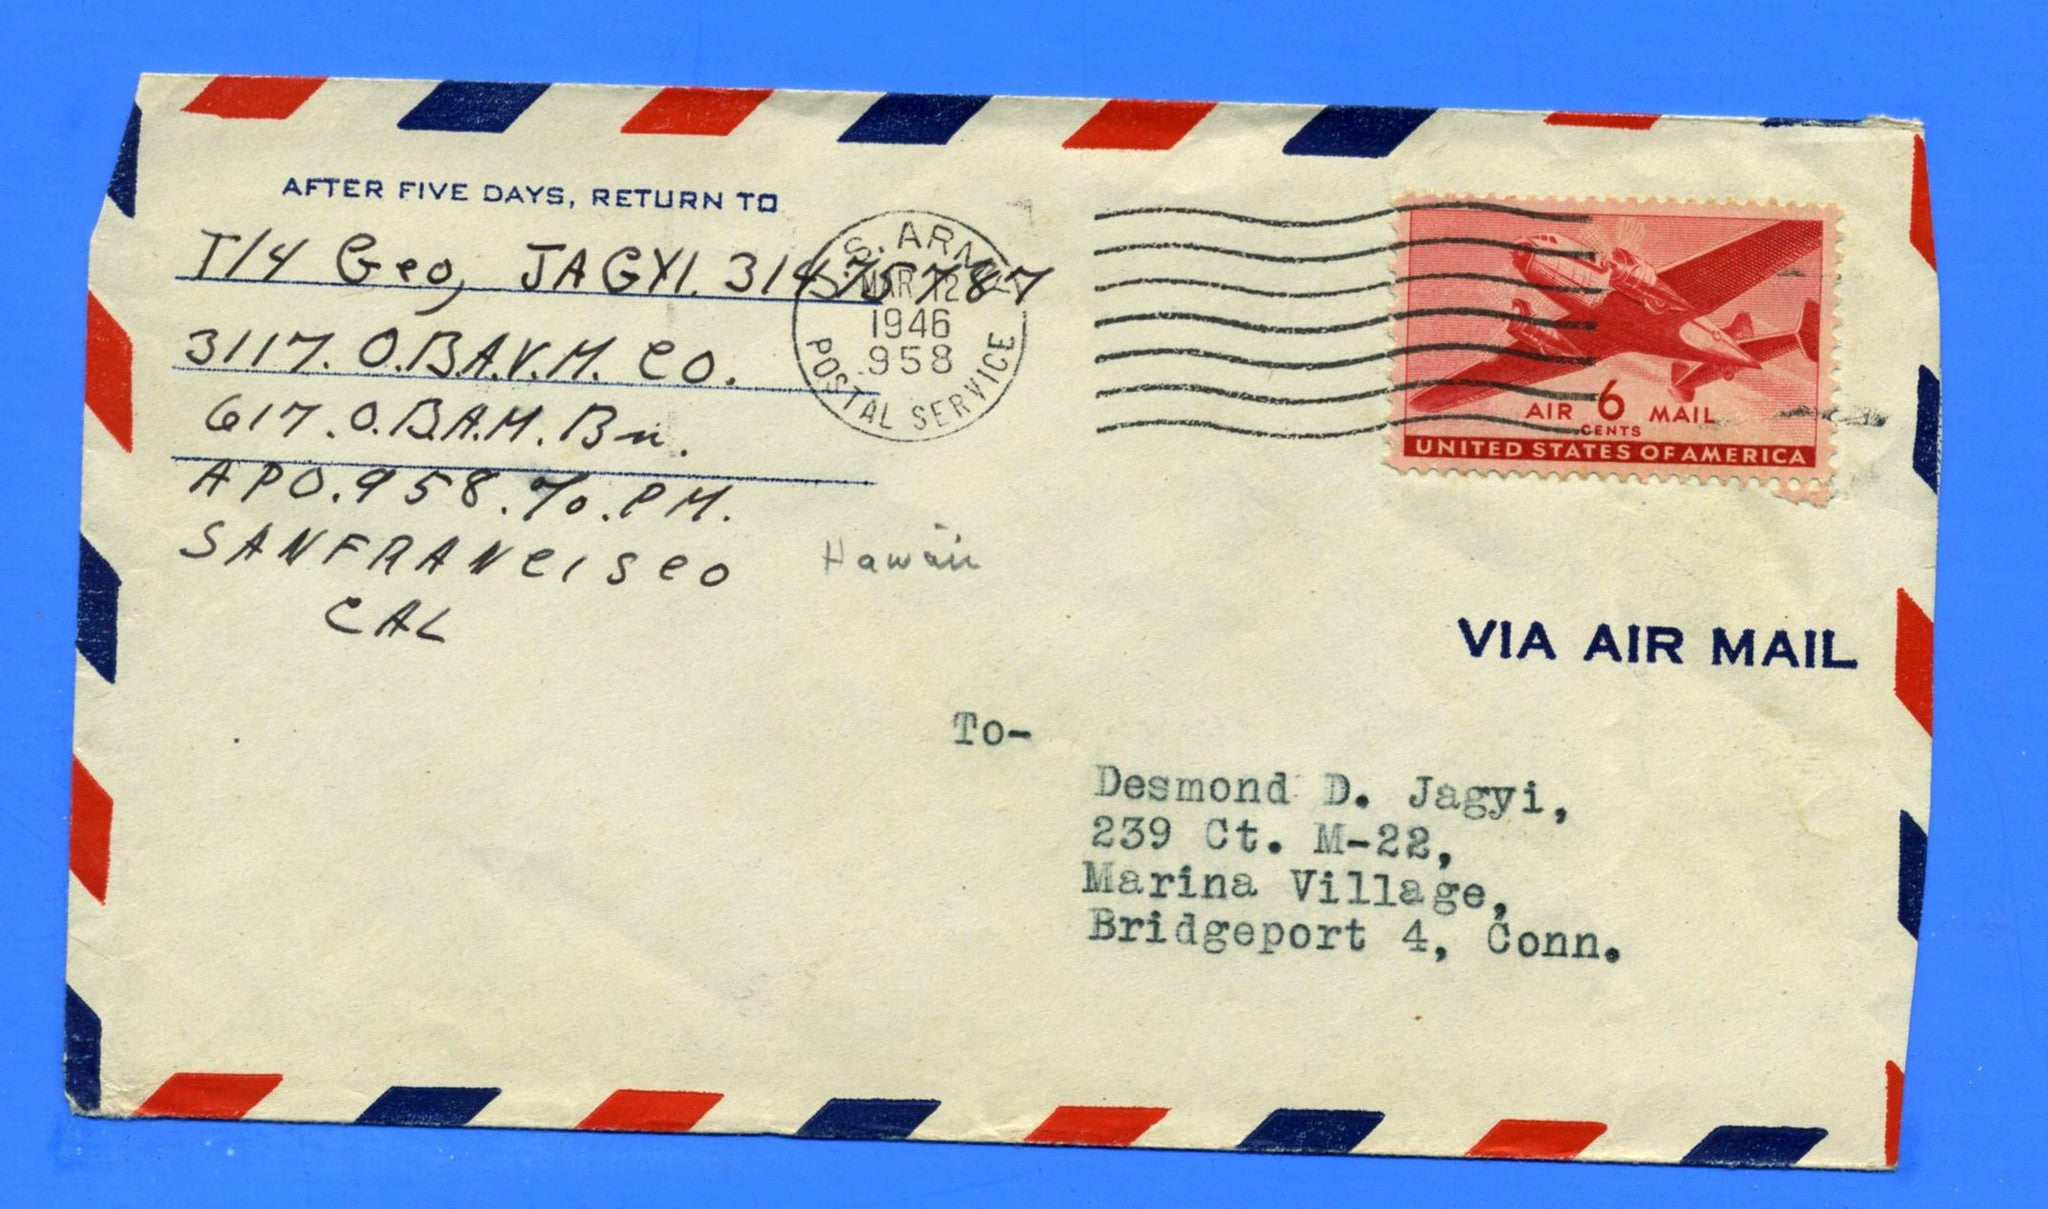 Soldier's Mail APO 958 Fort Shafter, Hawaii March 12, 1946